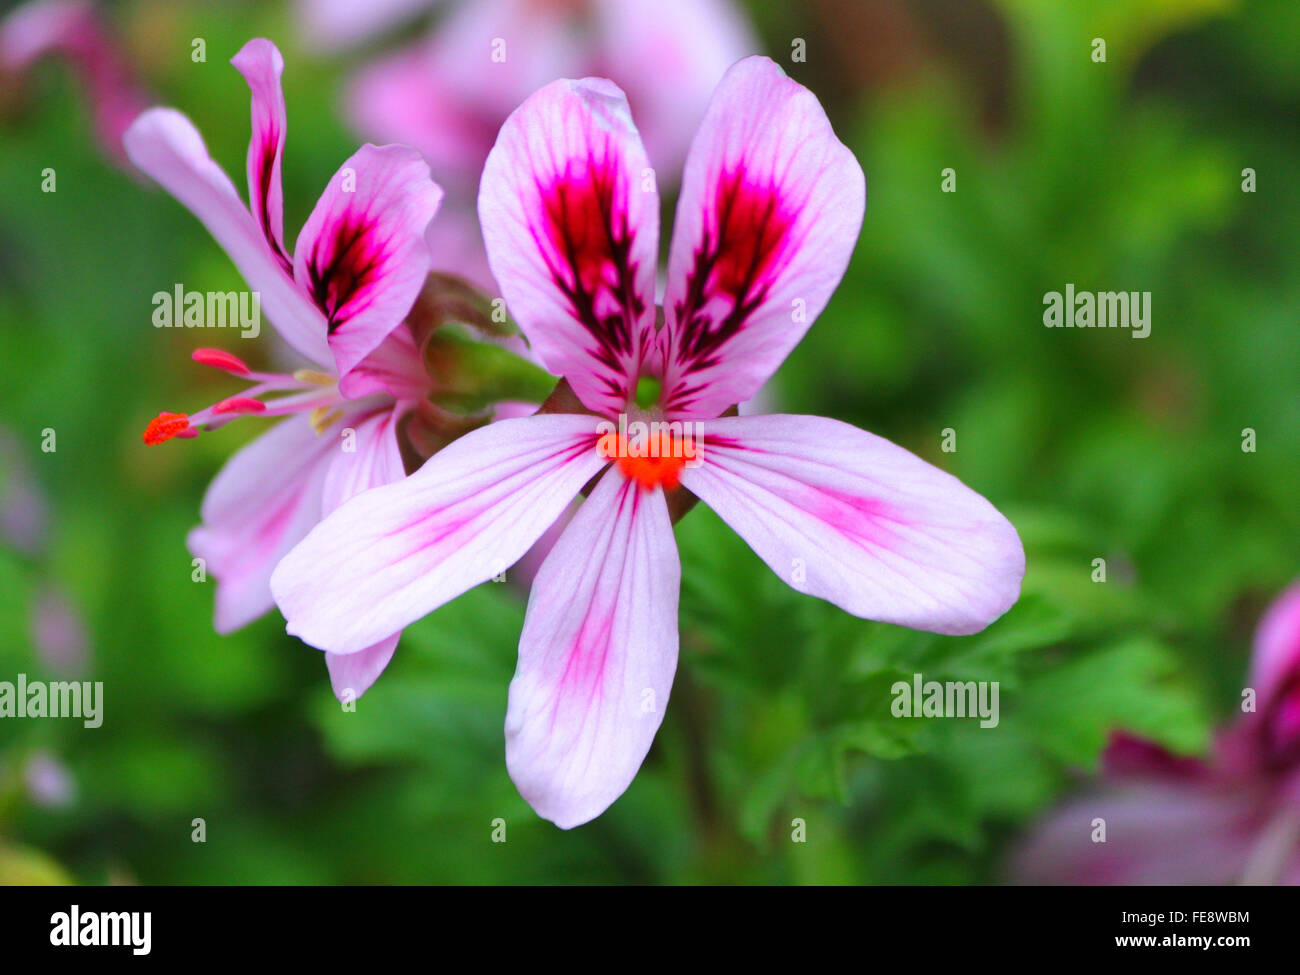 Close Up Of Pink Pansy Flowers Stock Photo 94852568 Alamy